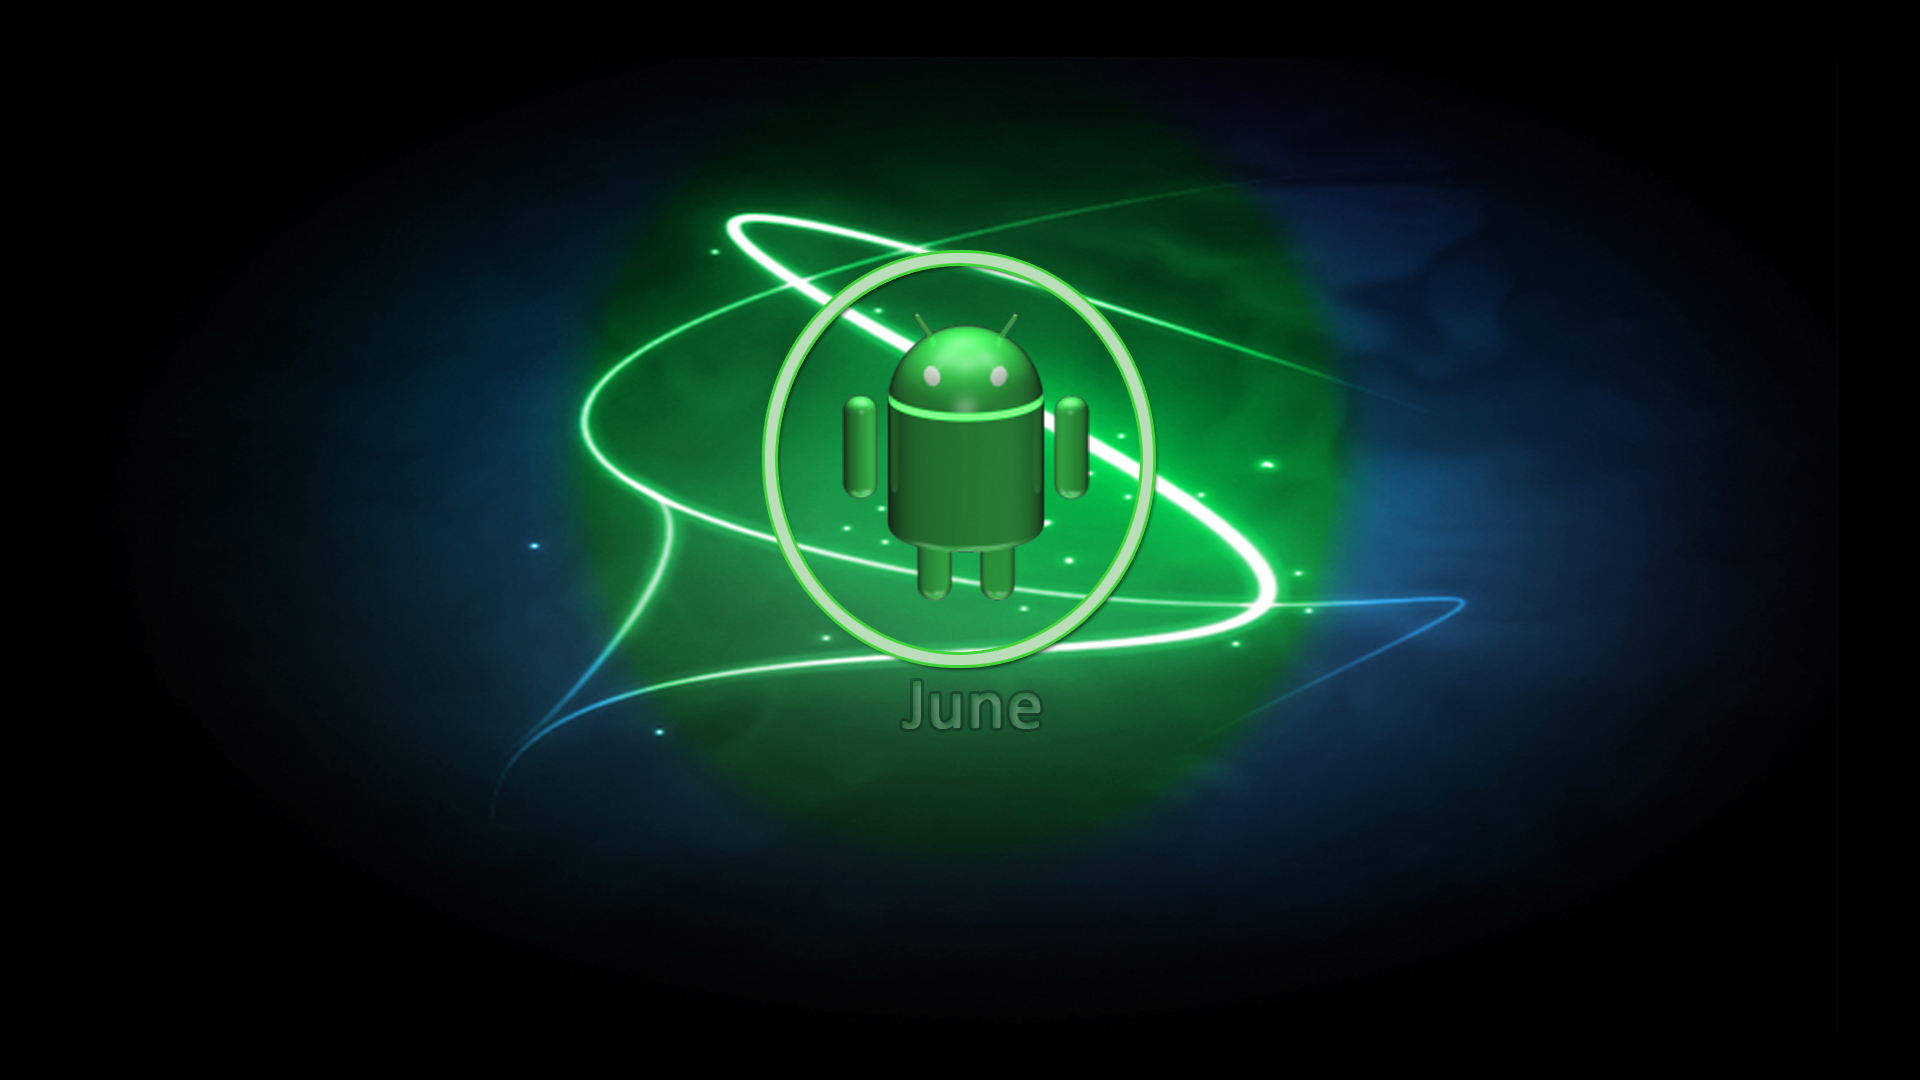 Wallpaper de android para junio android for Wallpapers para android